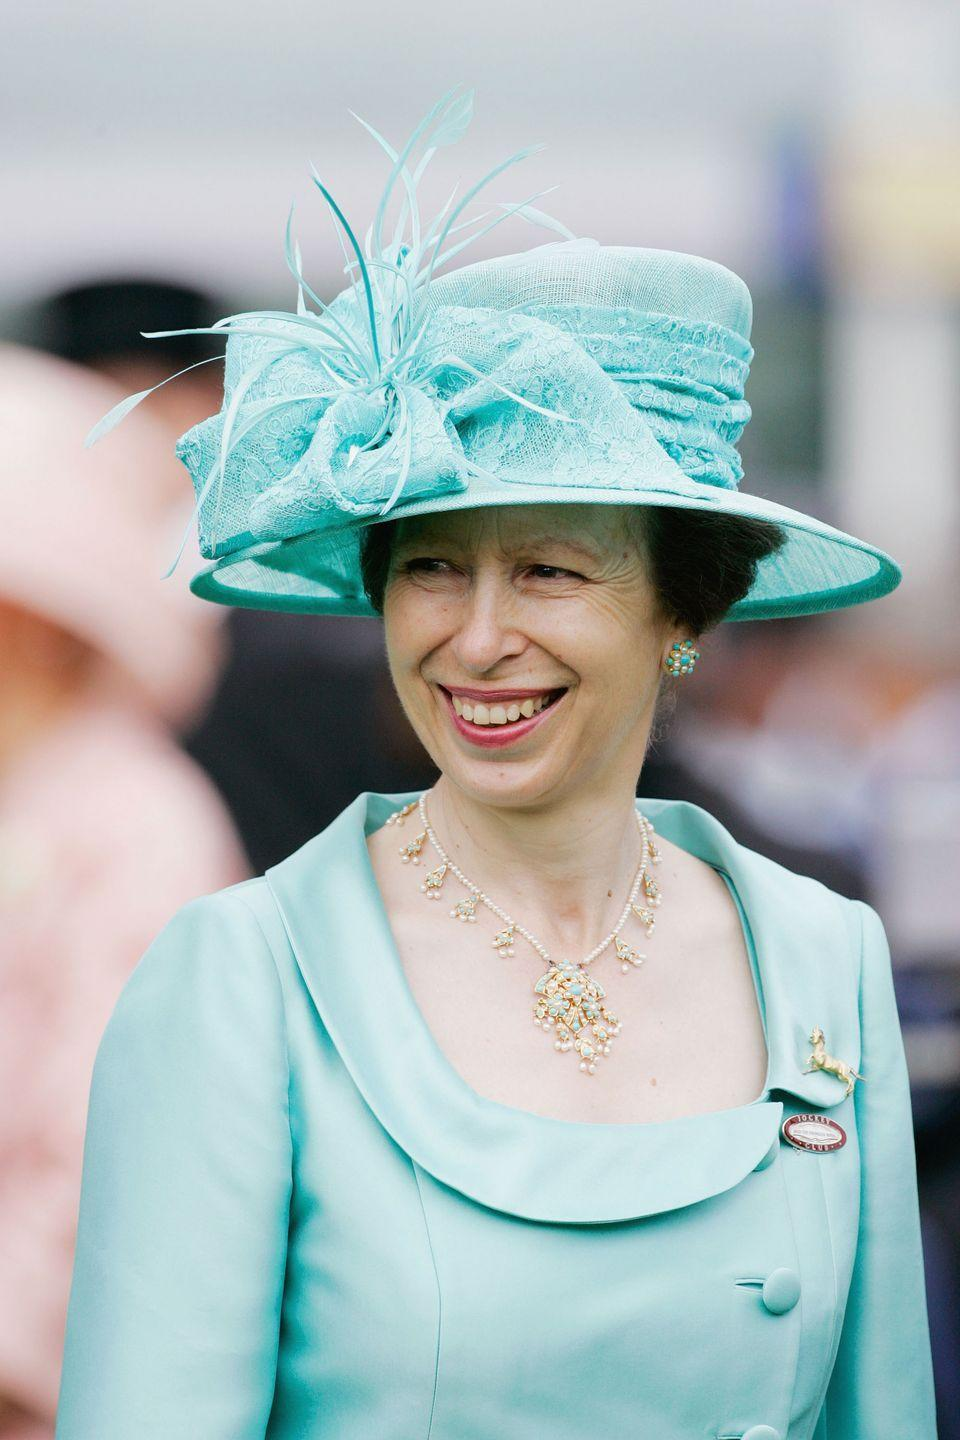 <p>On an official visit to England in 1966, Pakistan's President Ayub Khan came bearing a gift for Queen Elizabeth: a two-row turquoise, pearl, and gold necklace. A few years later, she refashioned the piece by shortening the necklace and creating a pair of matching earrings with the leftover pendants. She then gifted the set to her daughter, Princess Anne, who wore the jewels often throughout the '70s. The gems last appeared on the princess in 2007, at Royal Ascot.<br></p>